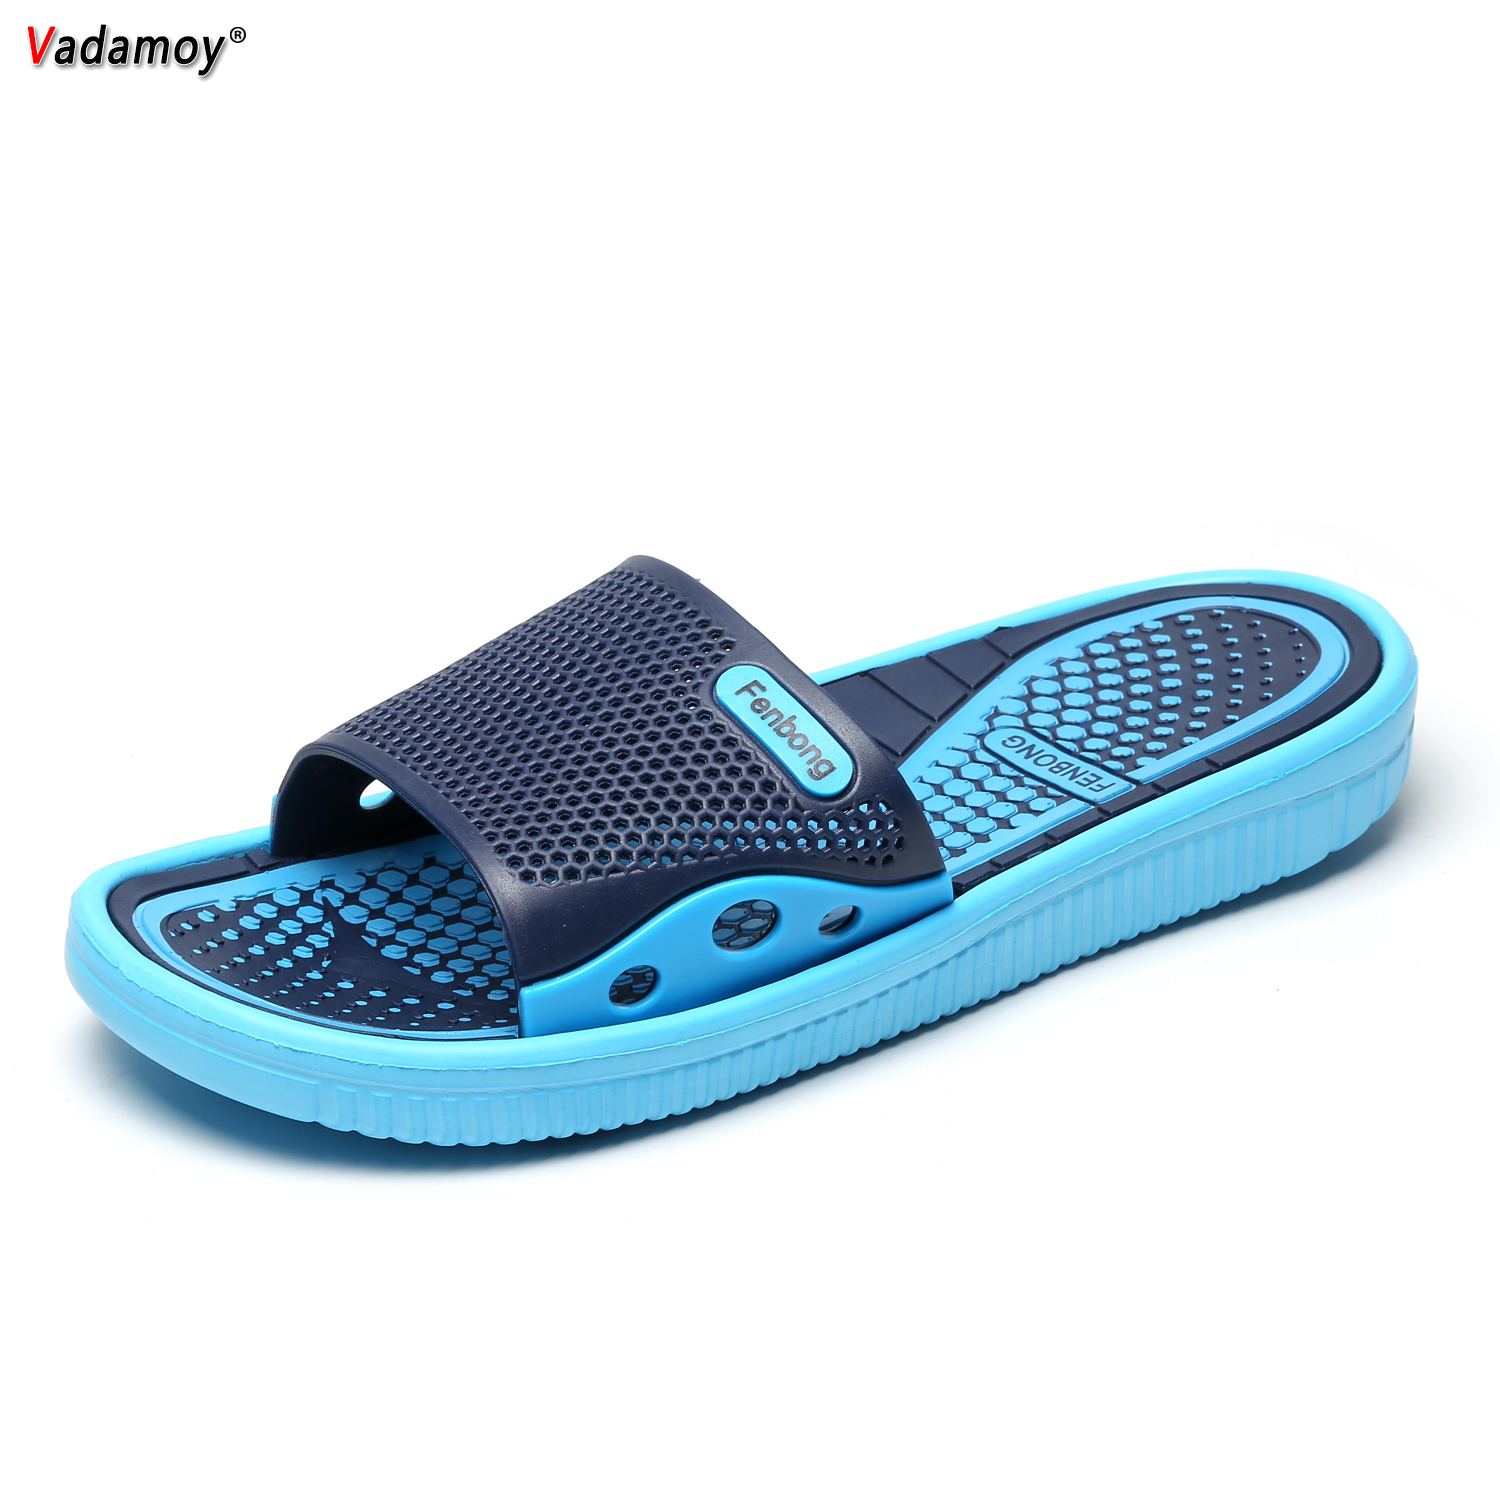 VADAMOY Men Shoes Unisex Summer Hollow Slippers Outdoor Breathable Casual Couple Beach Sandals Flip Flops Shoes Beach Slippers